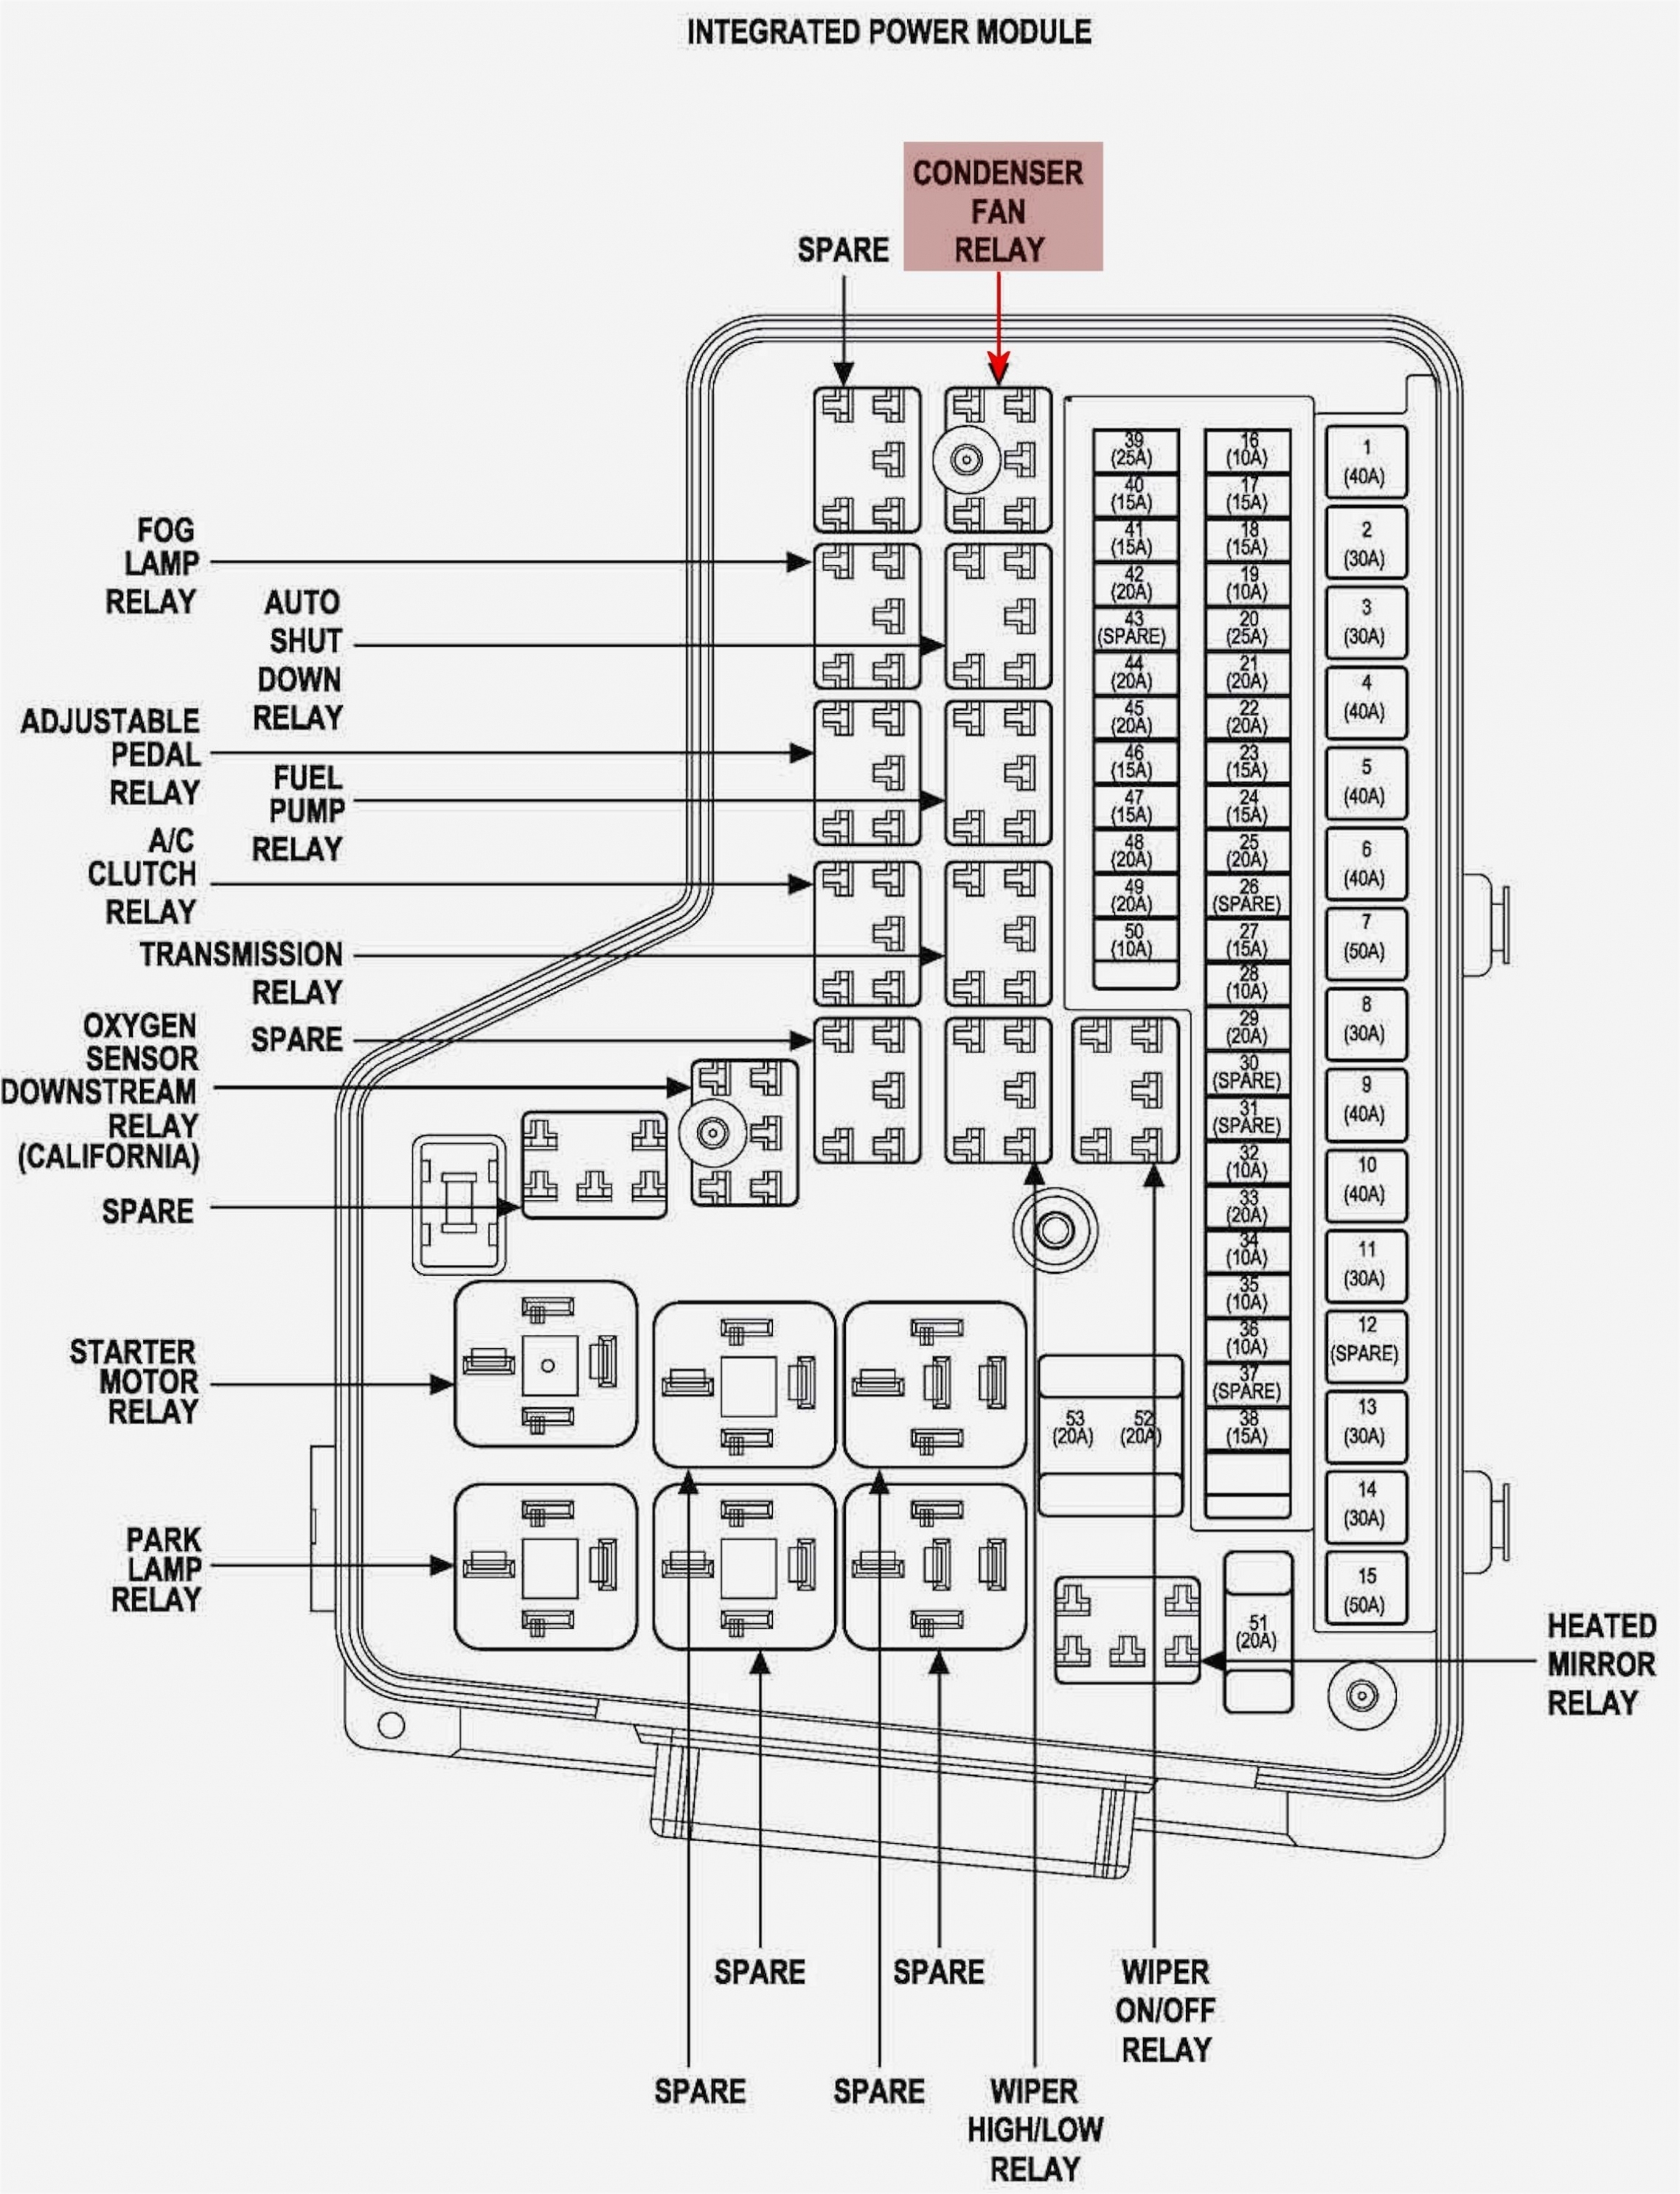 Marvelous Fuse Box Location 2004 Dodge Ram 1500 Wiring Diagram Wiring Cloud Peadfoxcilixyz